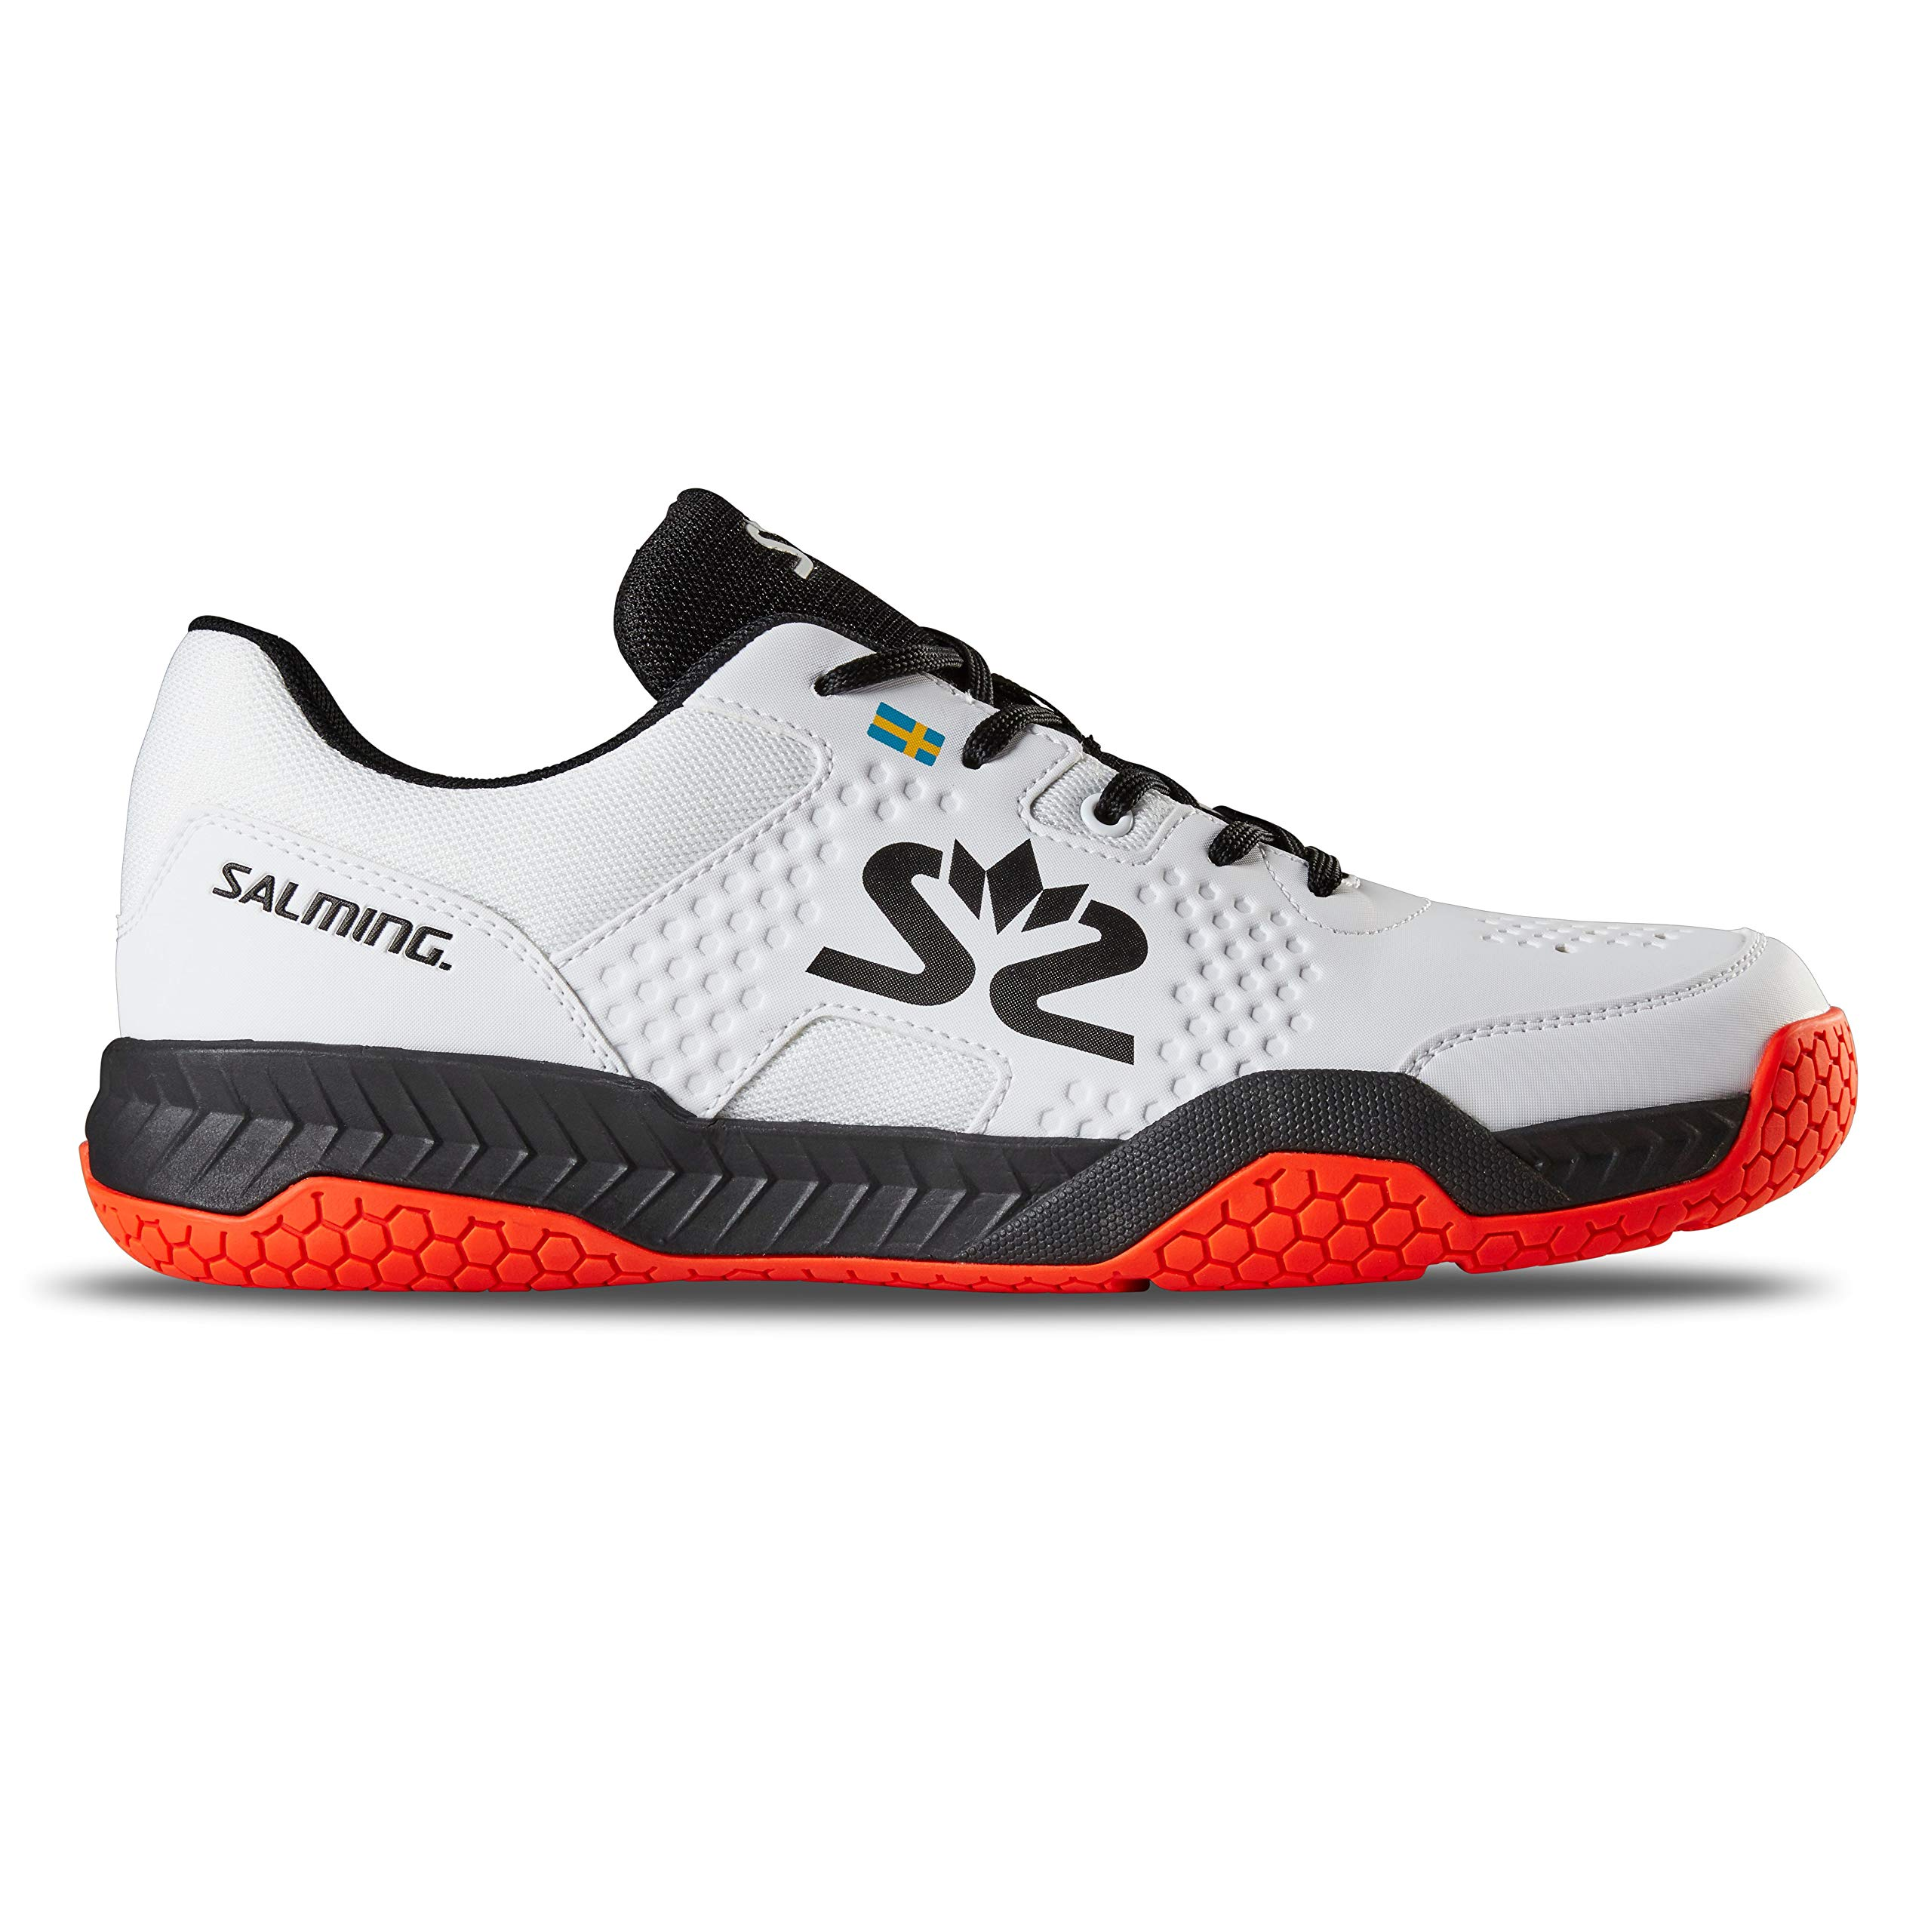 Salming Men's Hawk Court Squash Indoor Multisport Shoes, White/Black/New FlameRed, 8 by Salming